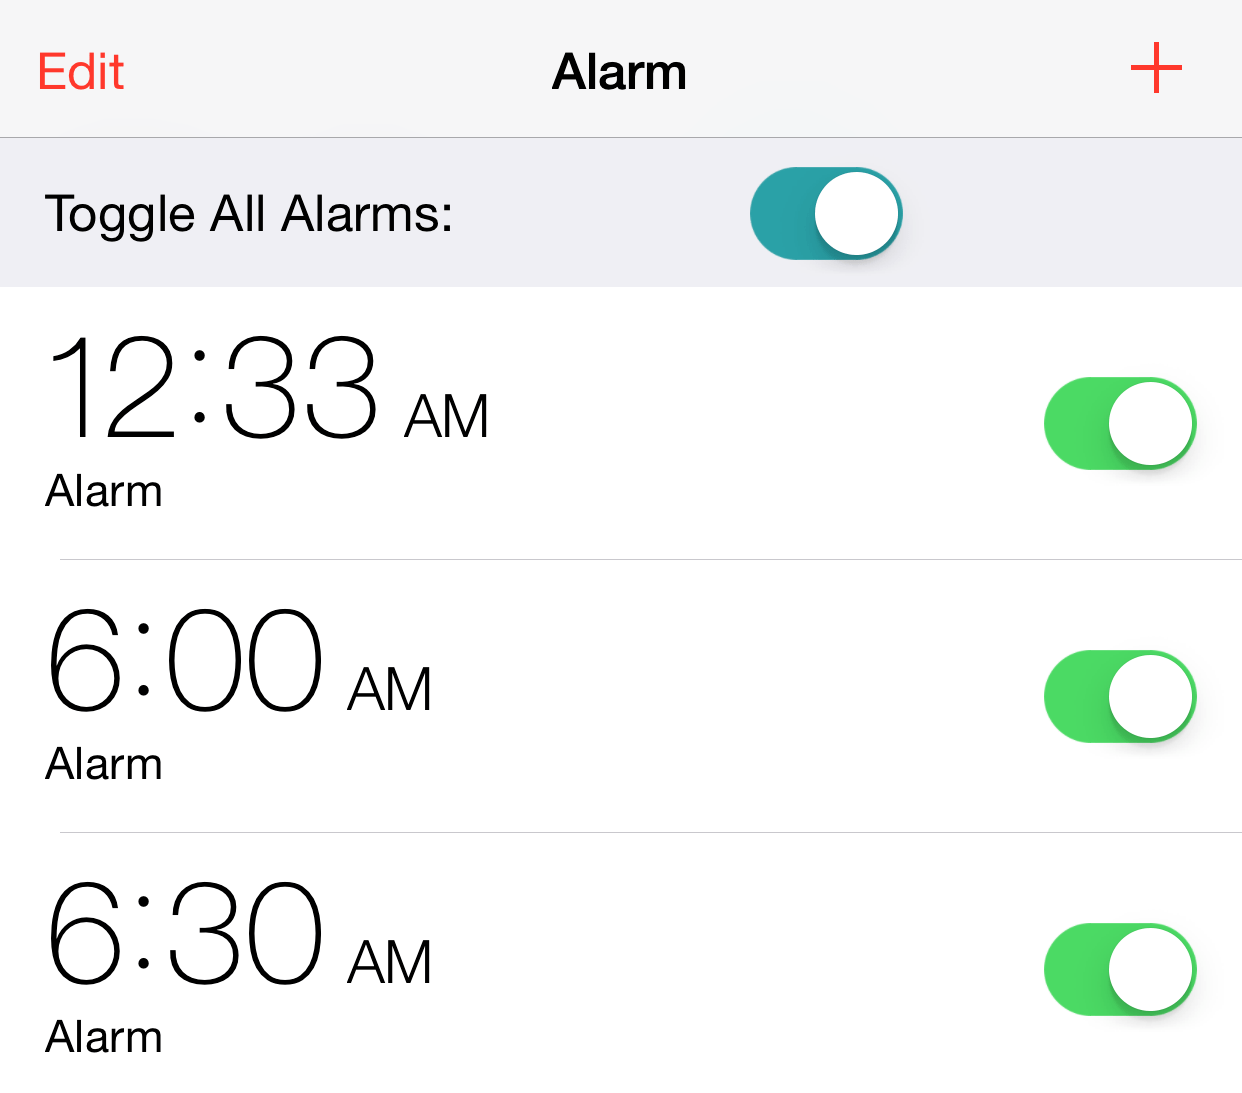 Allarm: a cleverly named tweak that toggles all alarm